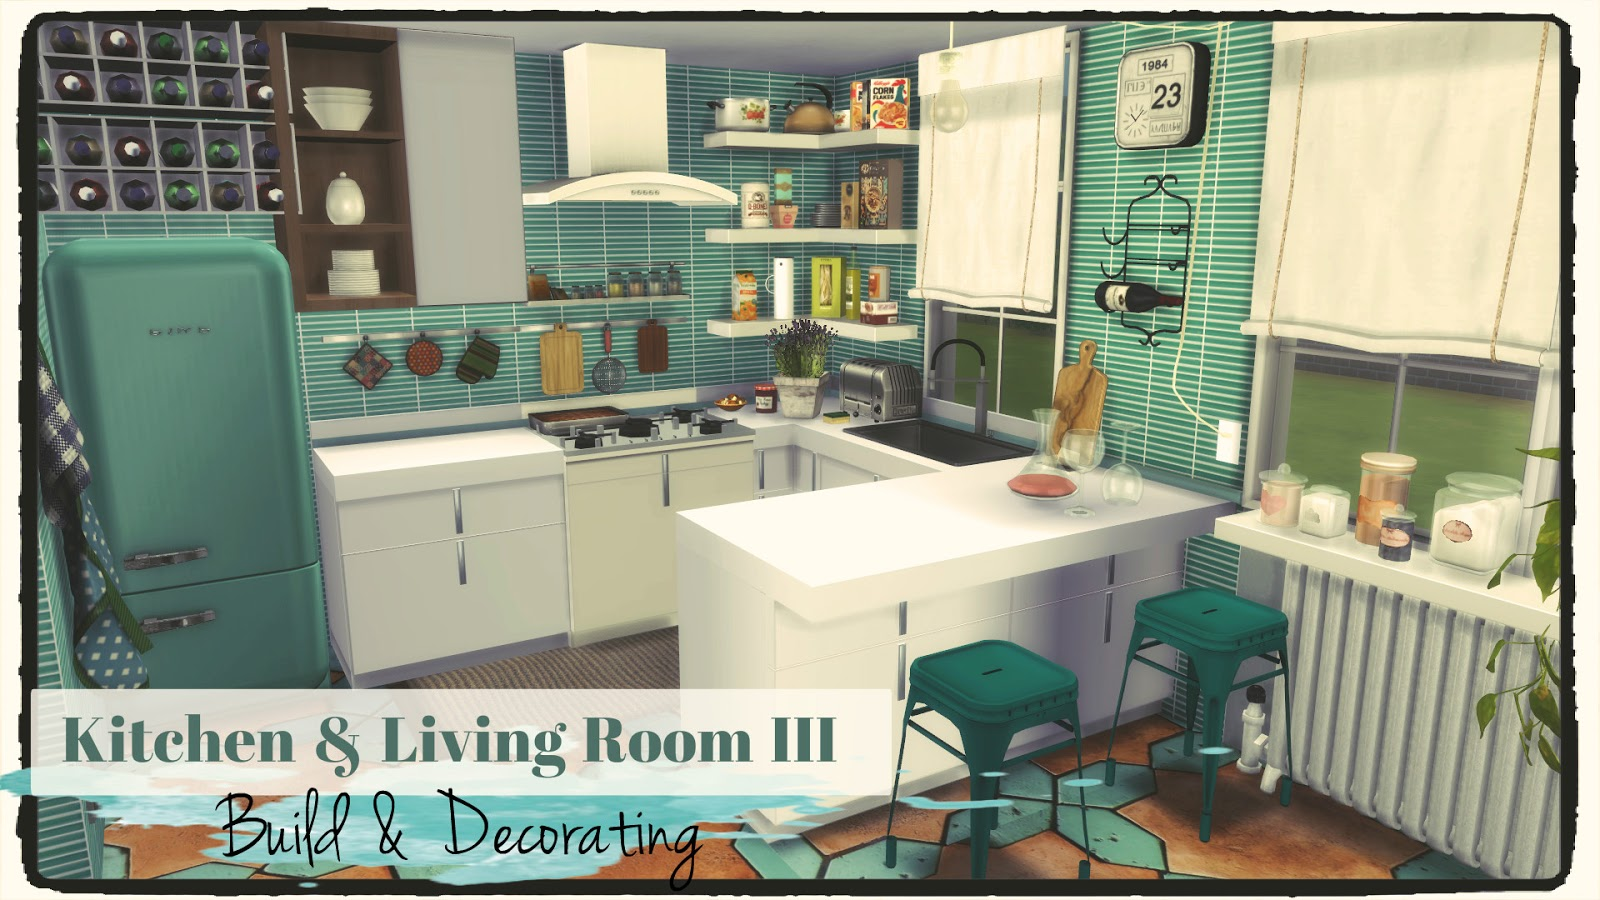 Sims 4 Kitchen amp Living Room III Build Decoration Dinha